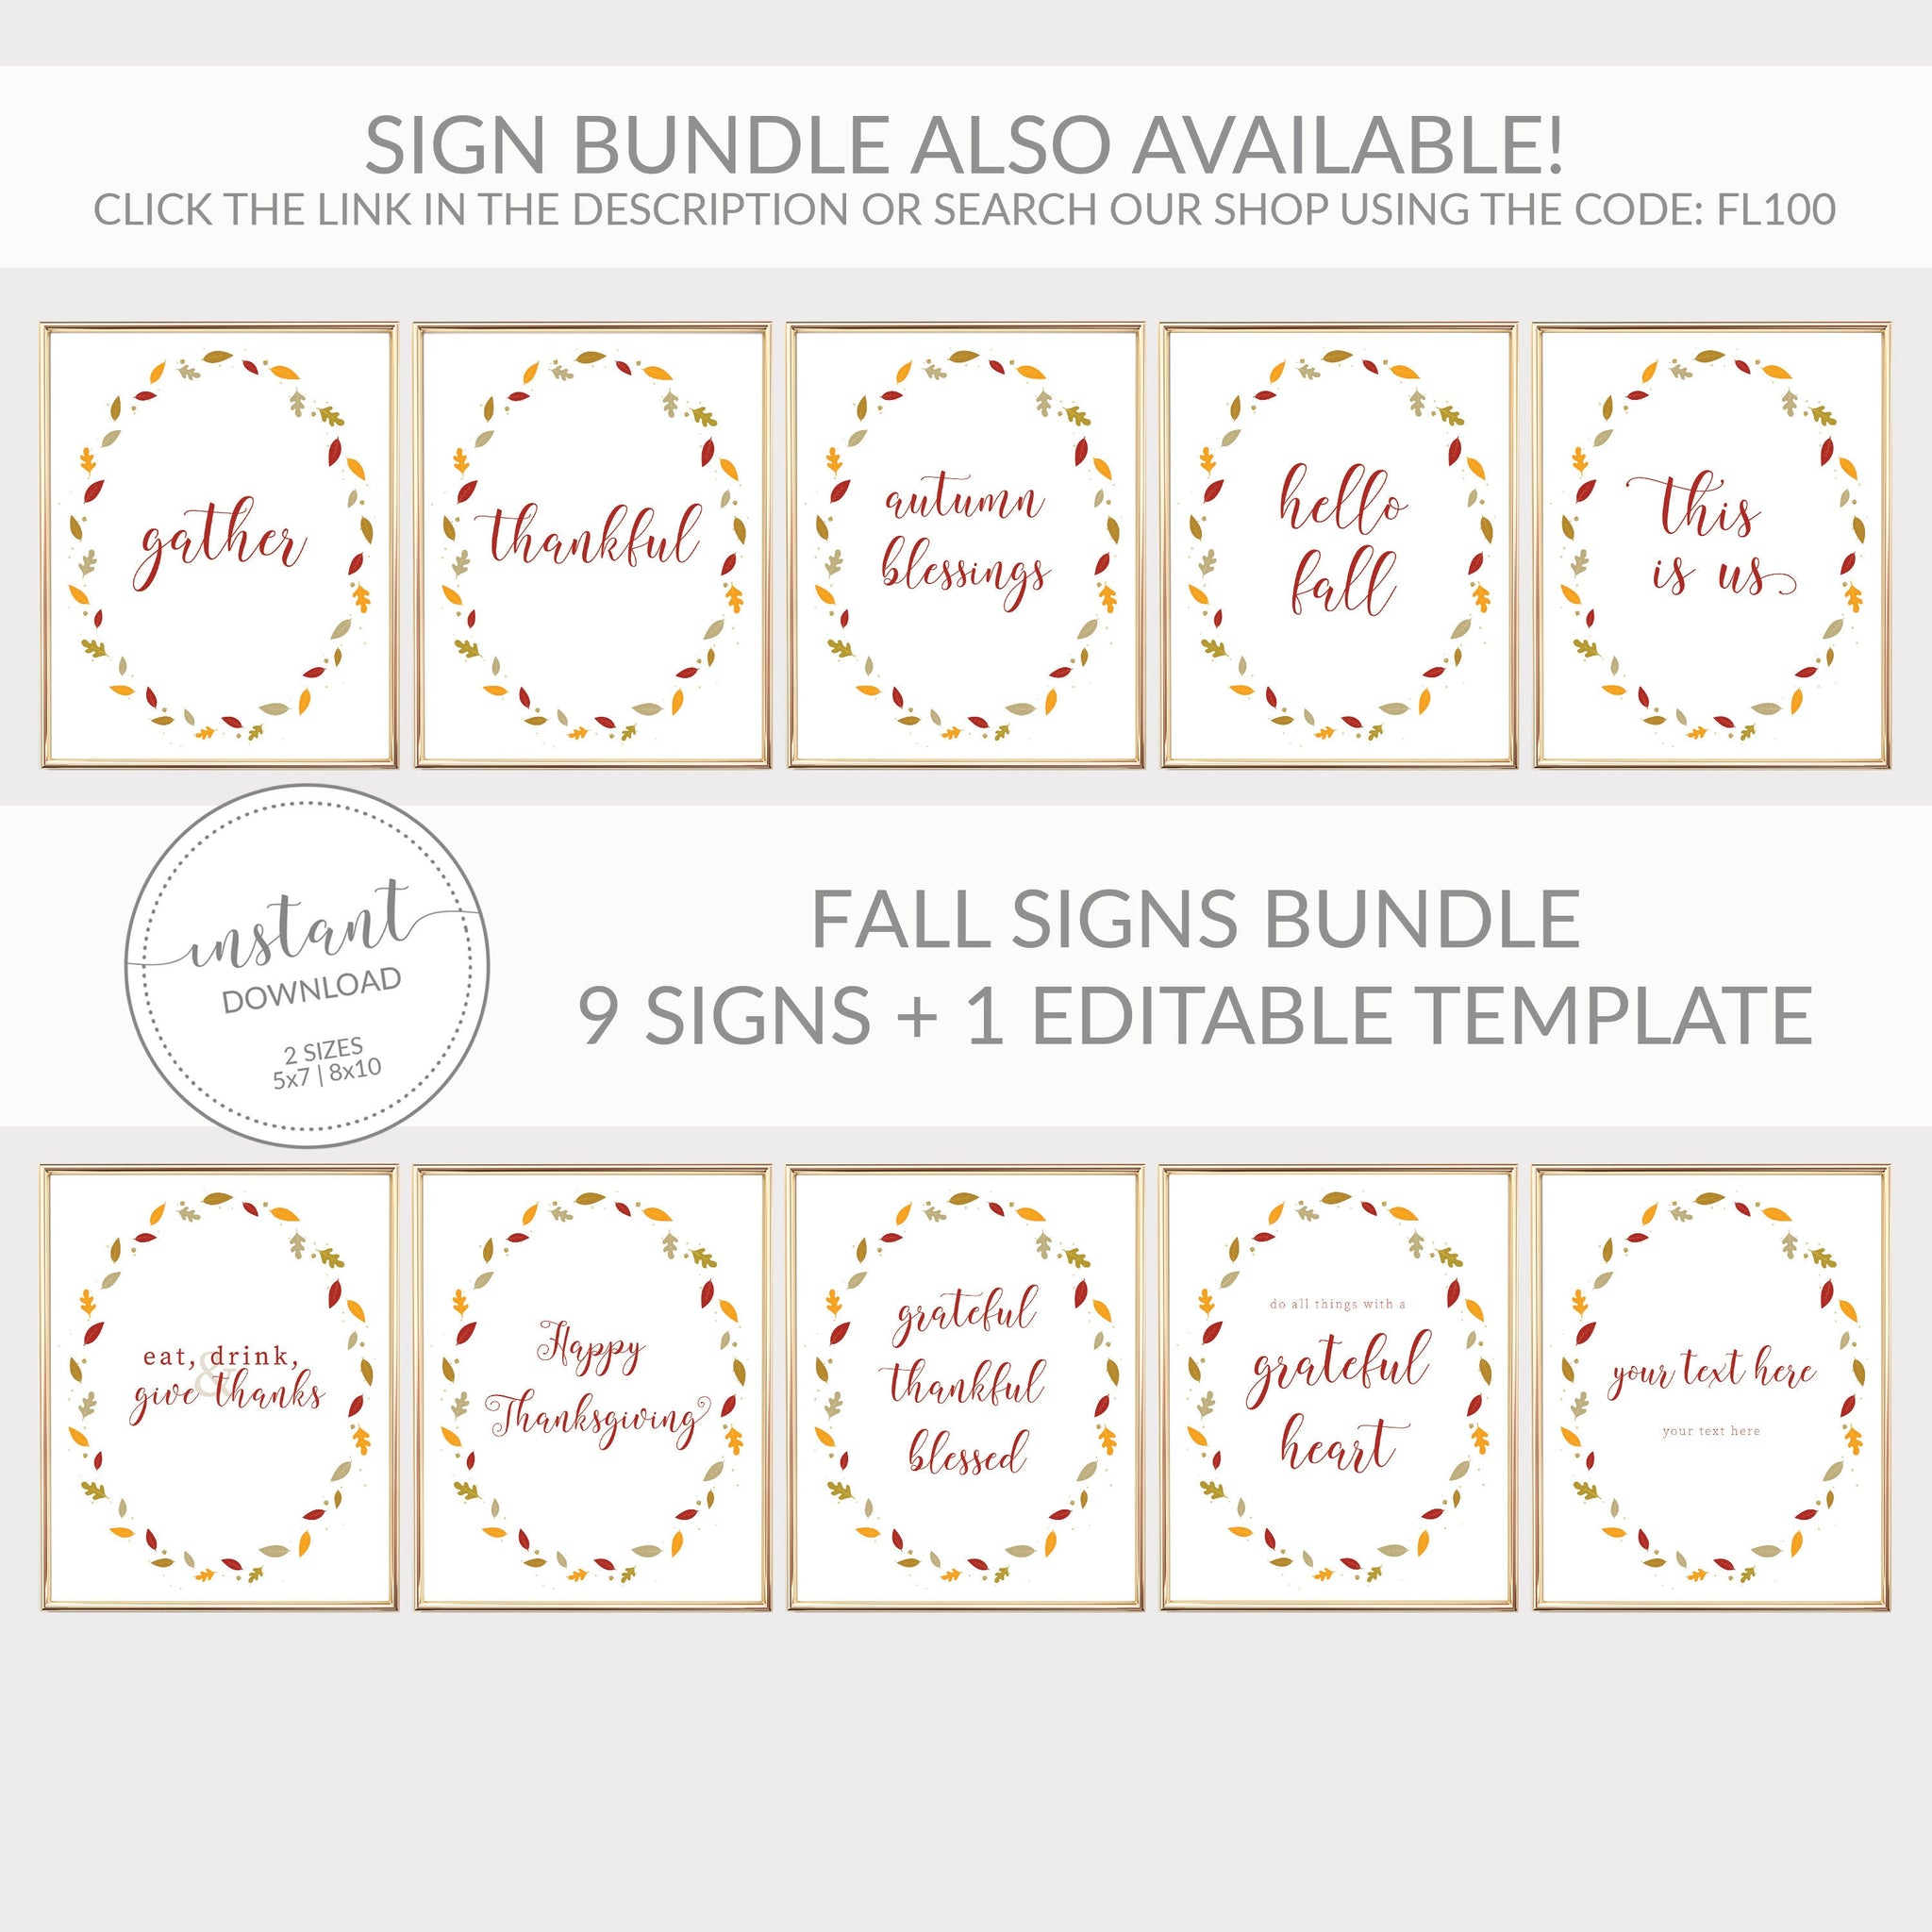 Grateful Thankful Blessed Sign, Fall Decor Printable, Thanksgiving Decorations, Fall Leaves Printable Sign, INSTANT DOWNLOAD - FL100 - @PlumPolkaDot